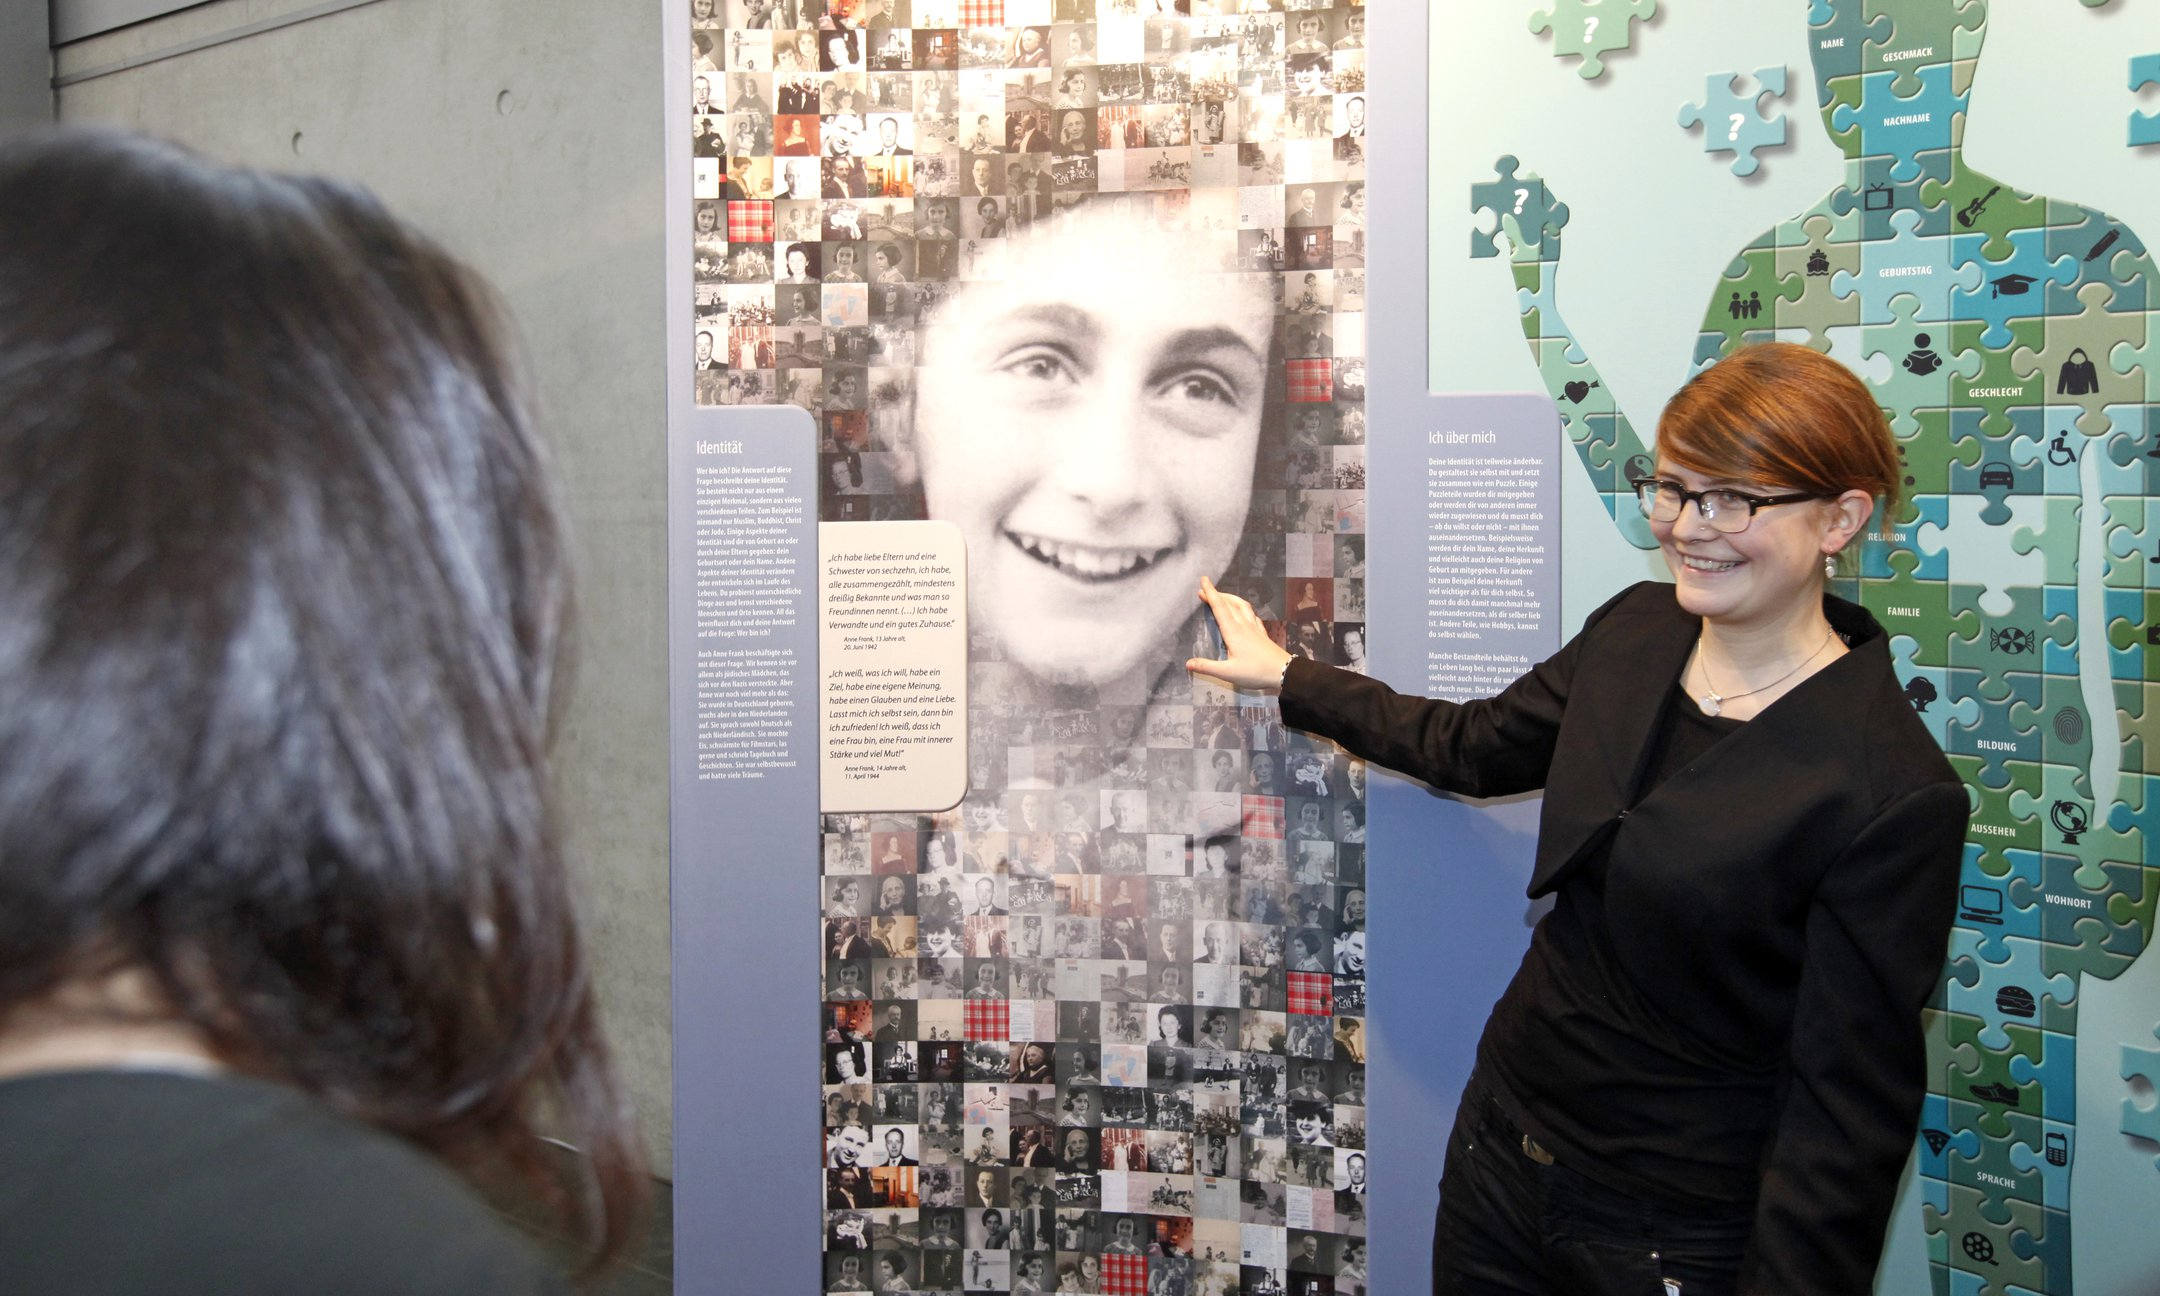 A peer guide in action at an Anne Frank exhibition in Berlin, Germany